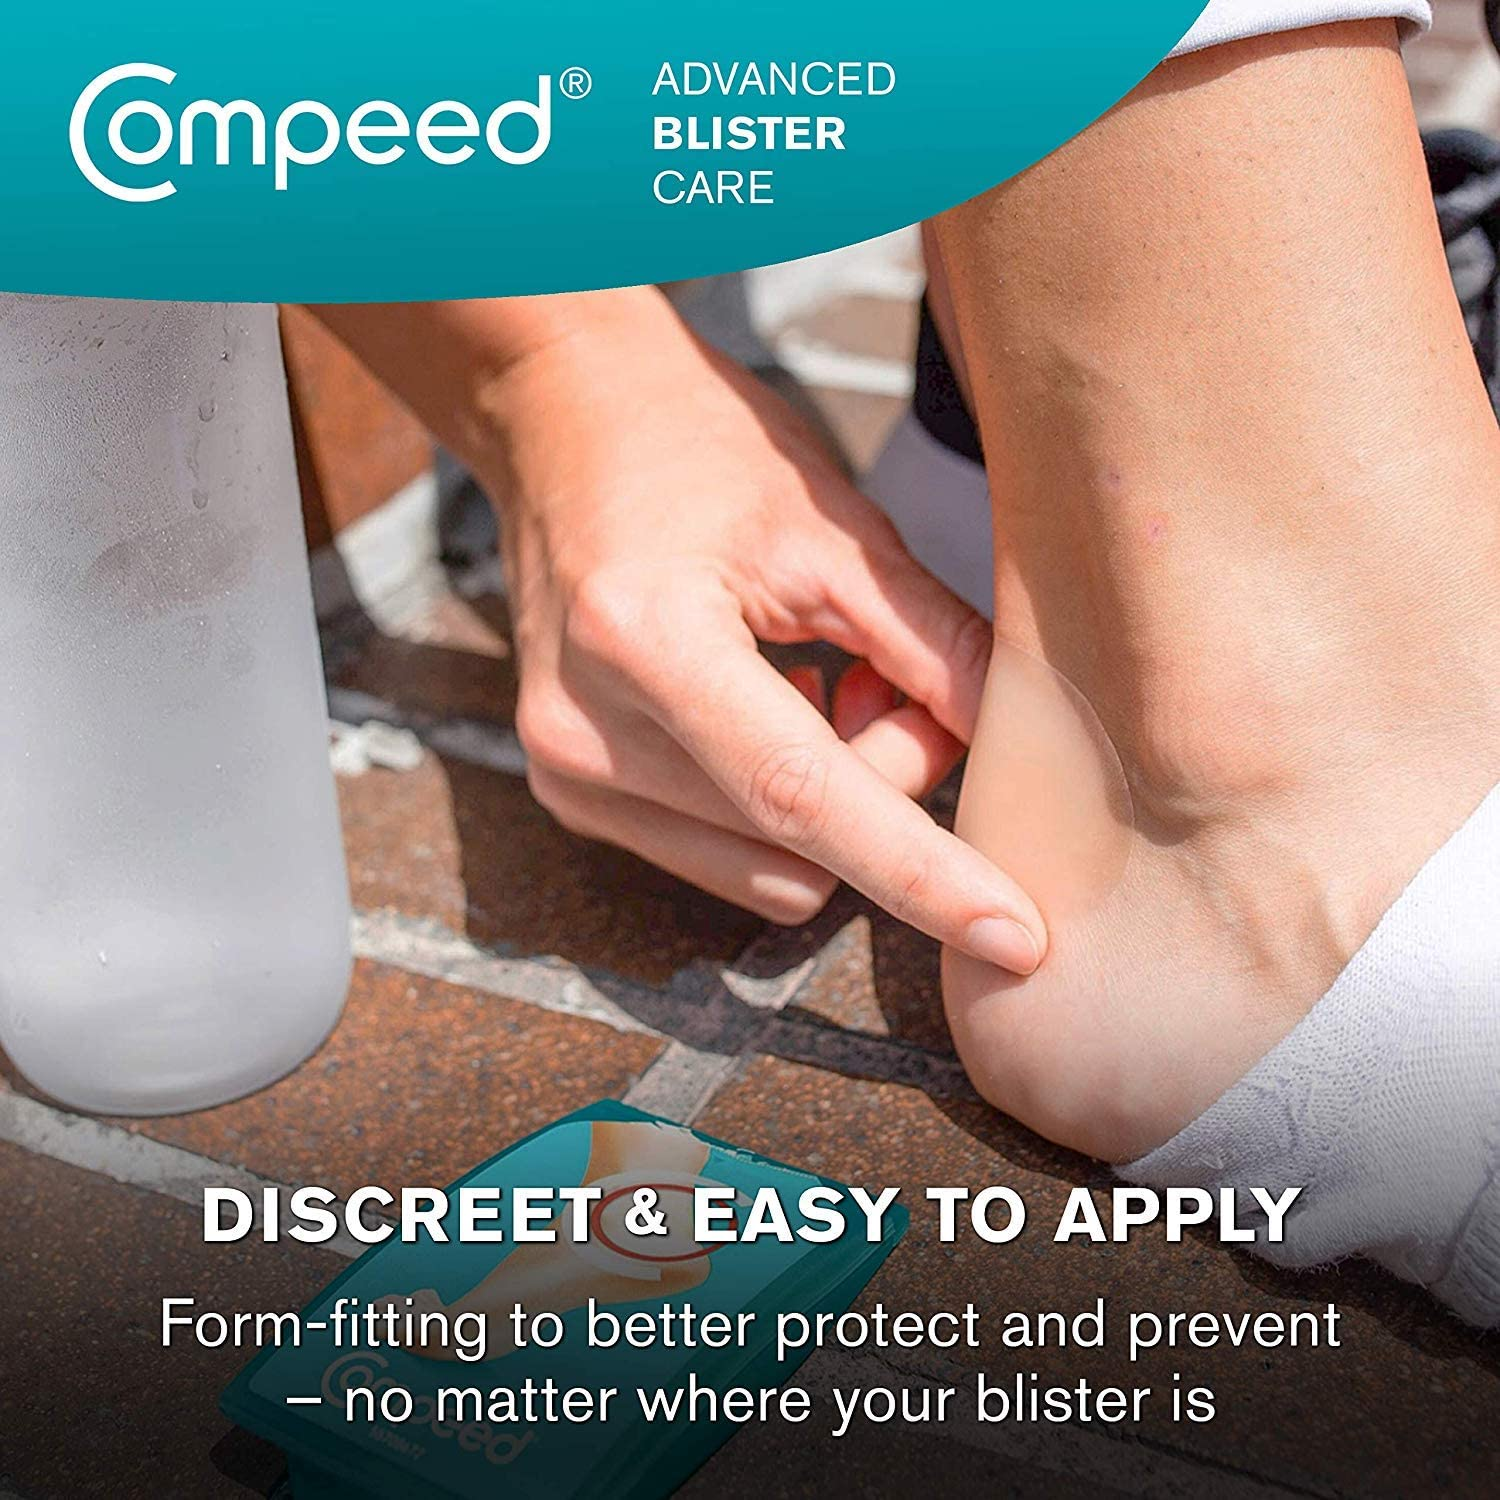 2 Pack Compeed Advanced Blister Care Cushions 6 Count Small Pads